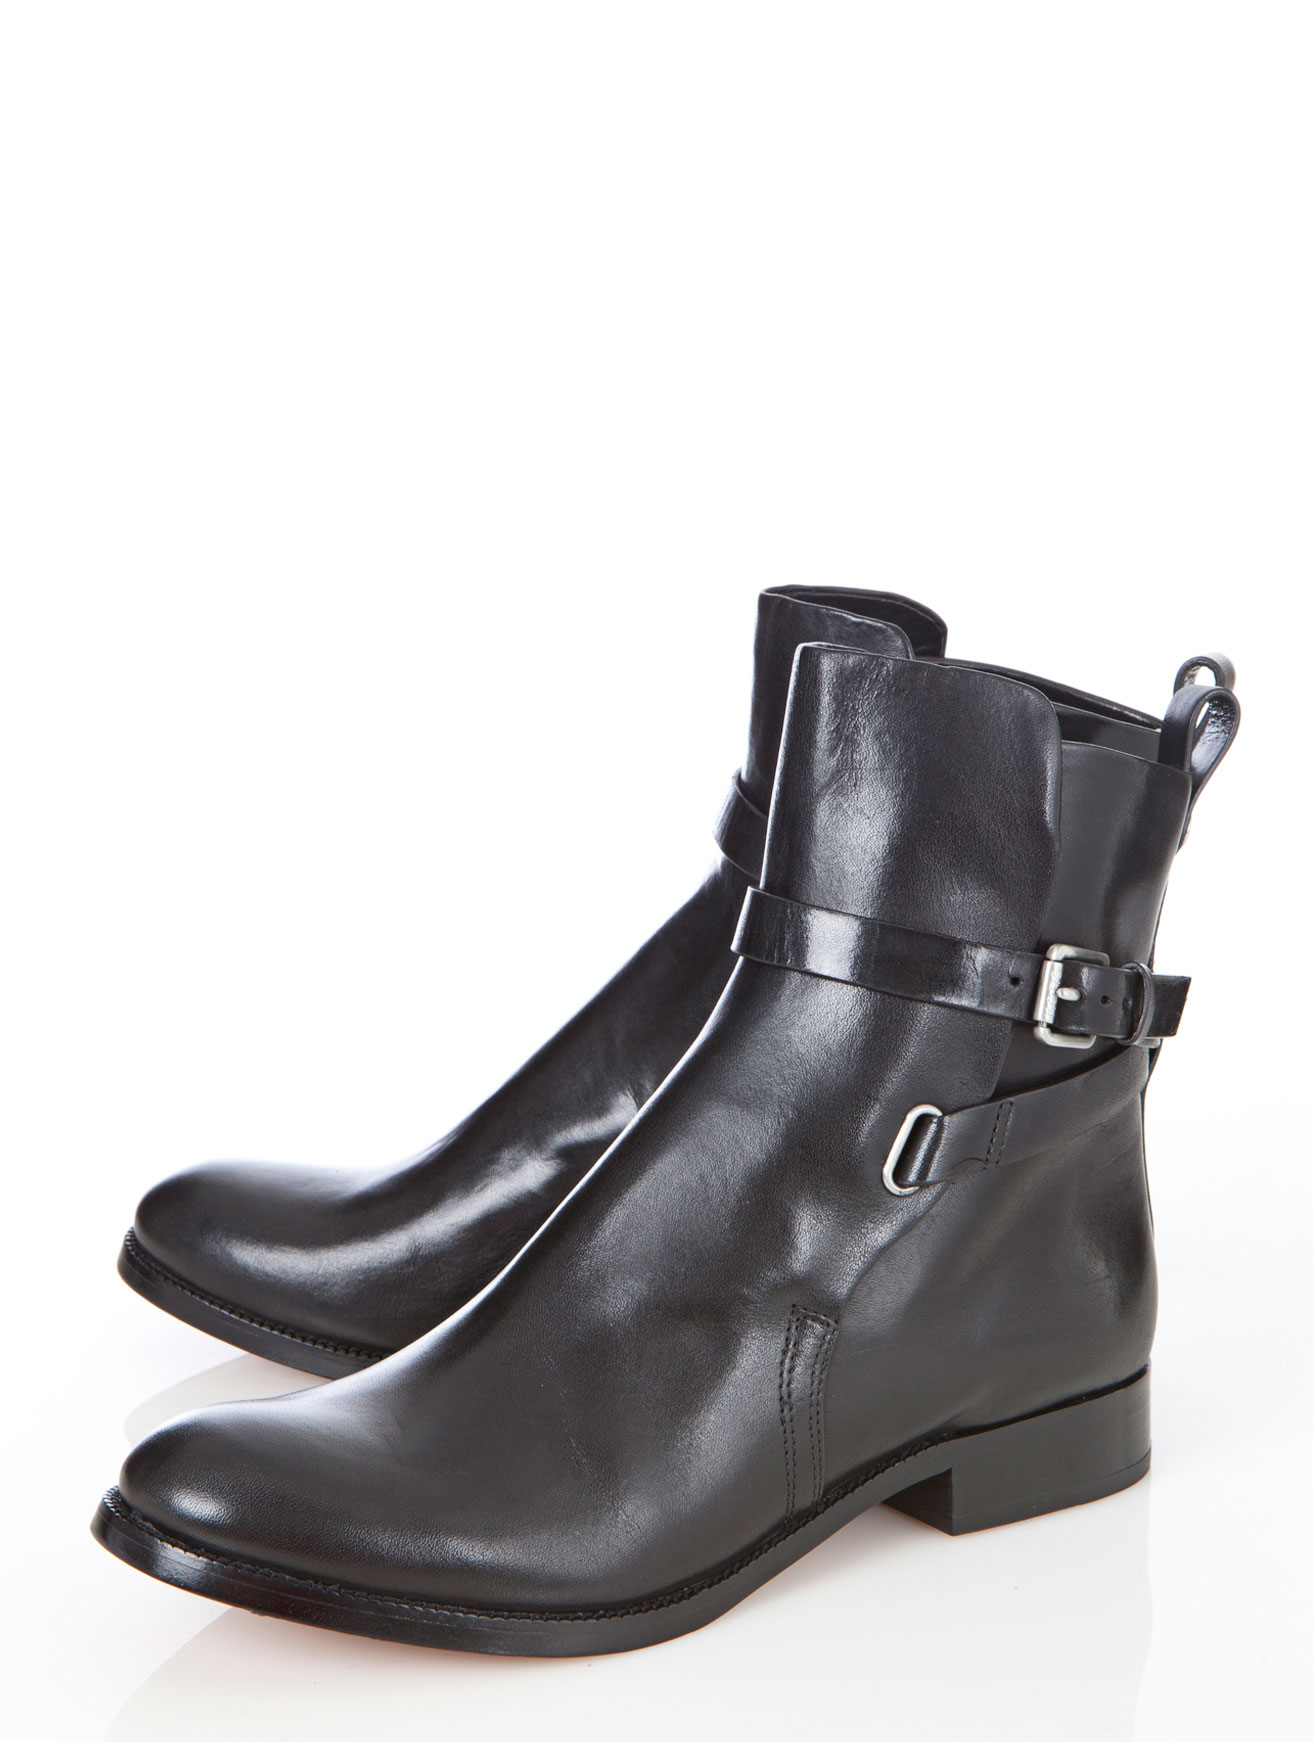 kors by michael kors adele leather boots in black lyst